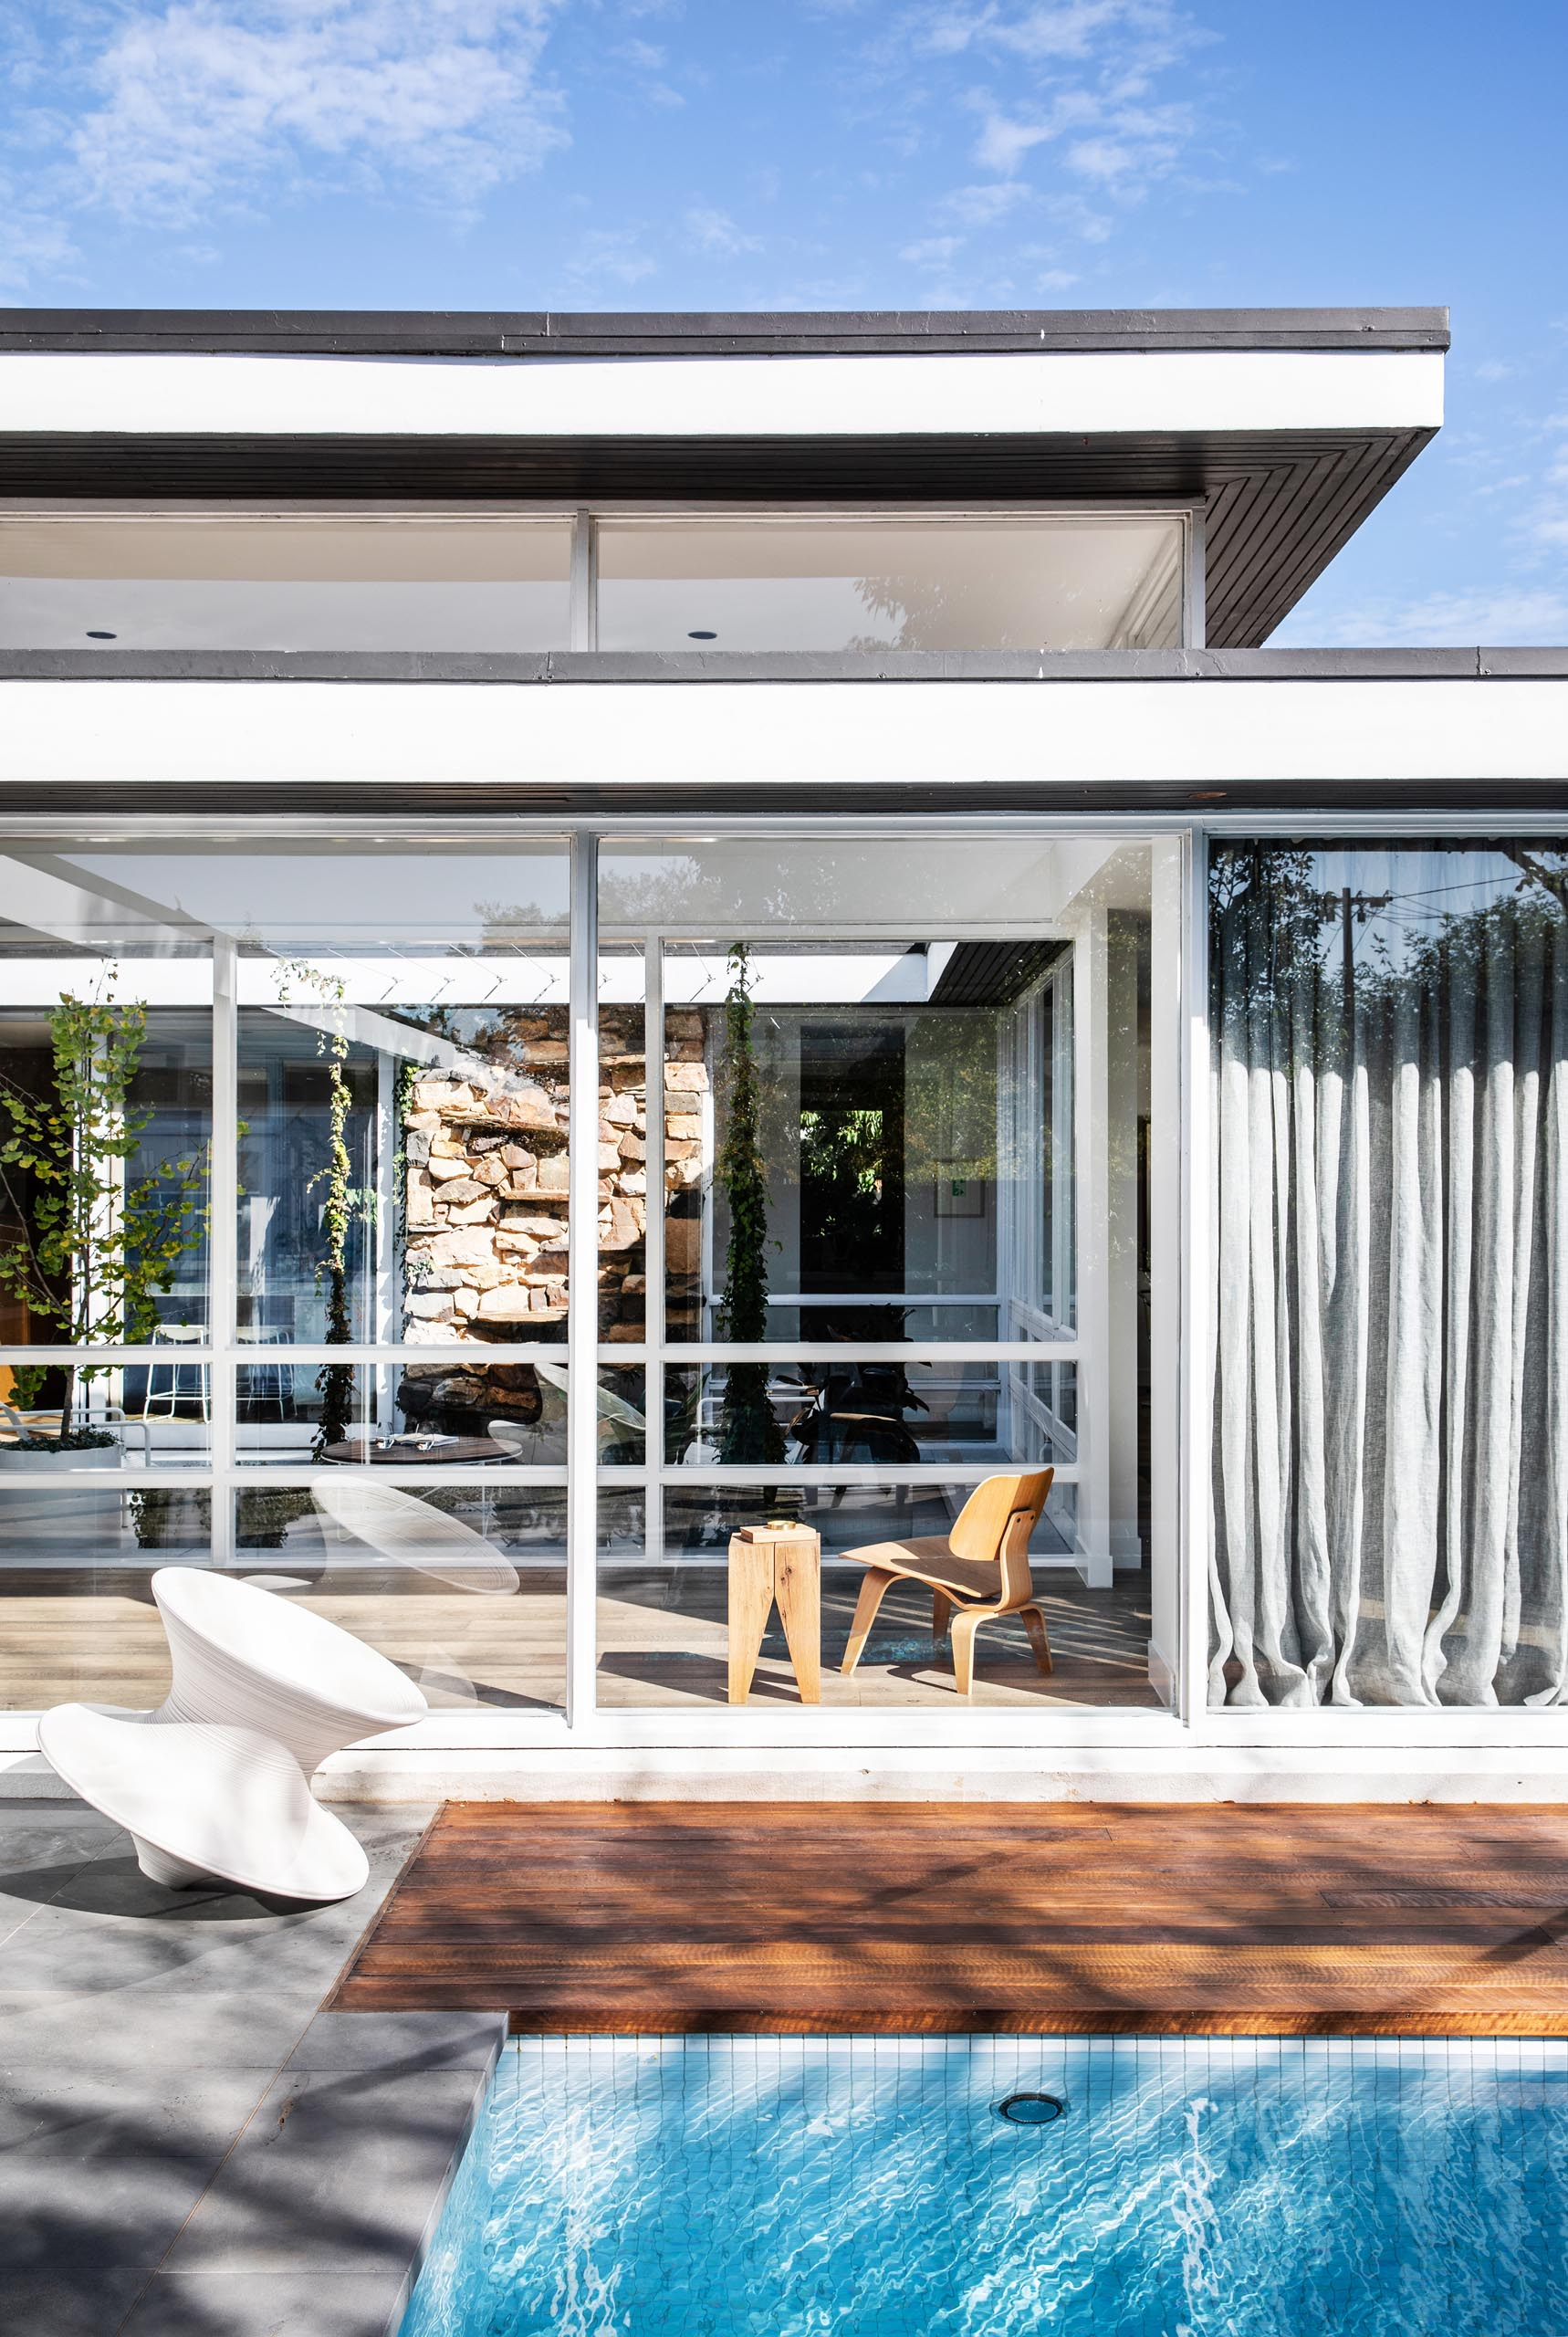 A mid century modern house with a swimming pool and floor-to-ceiling windows.